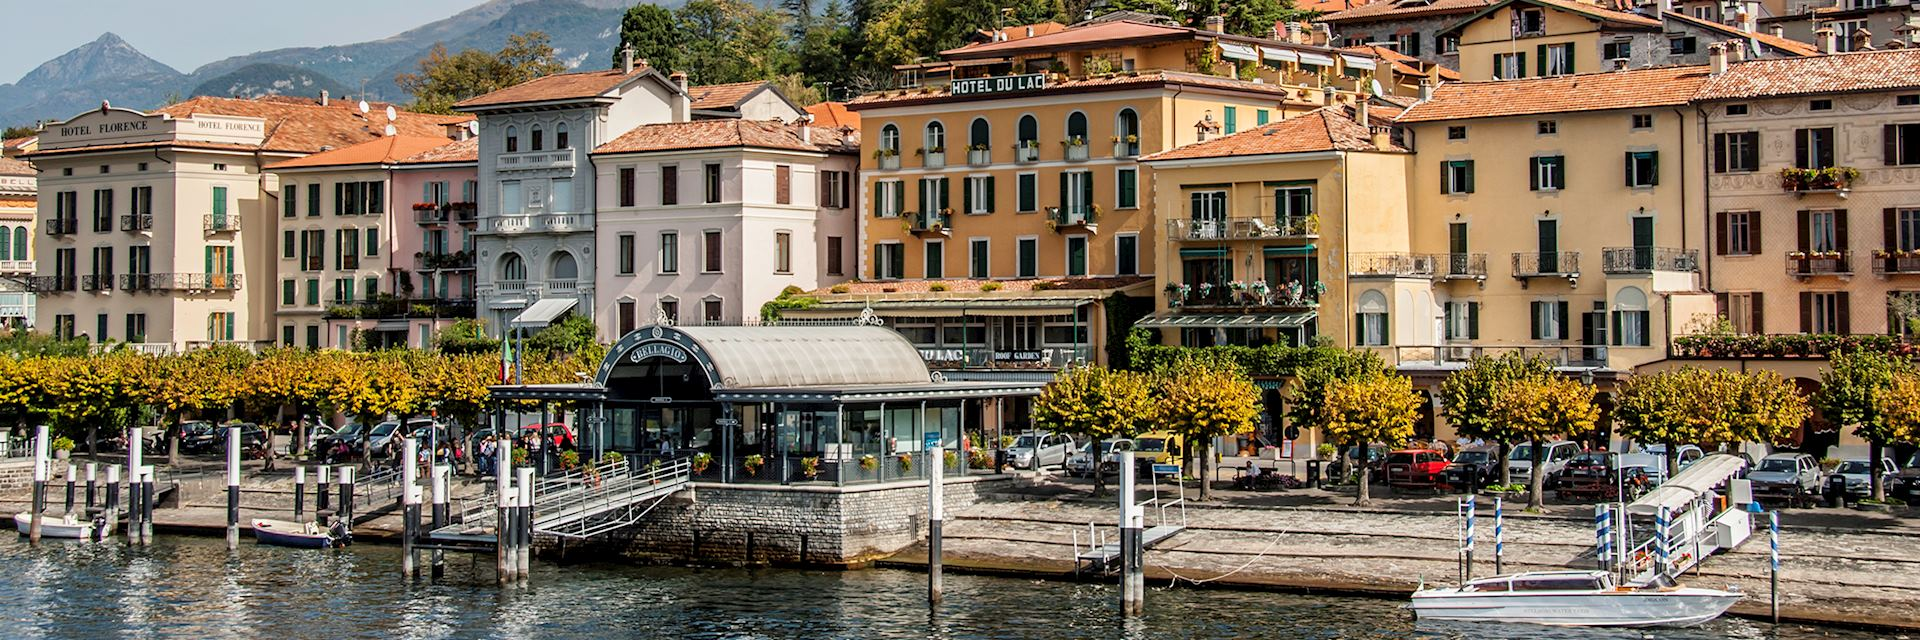 Caption: Bellagio waterfront, Lake Como